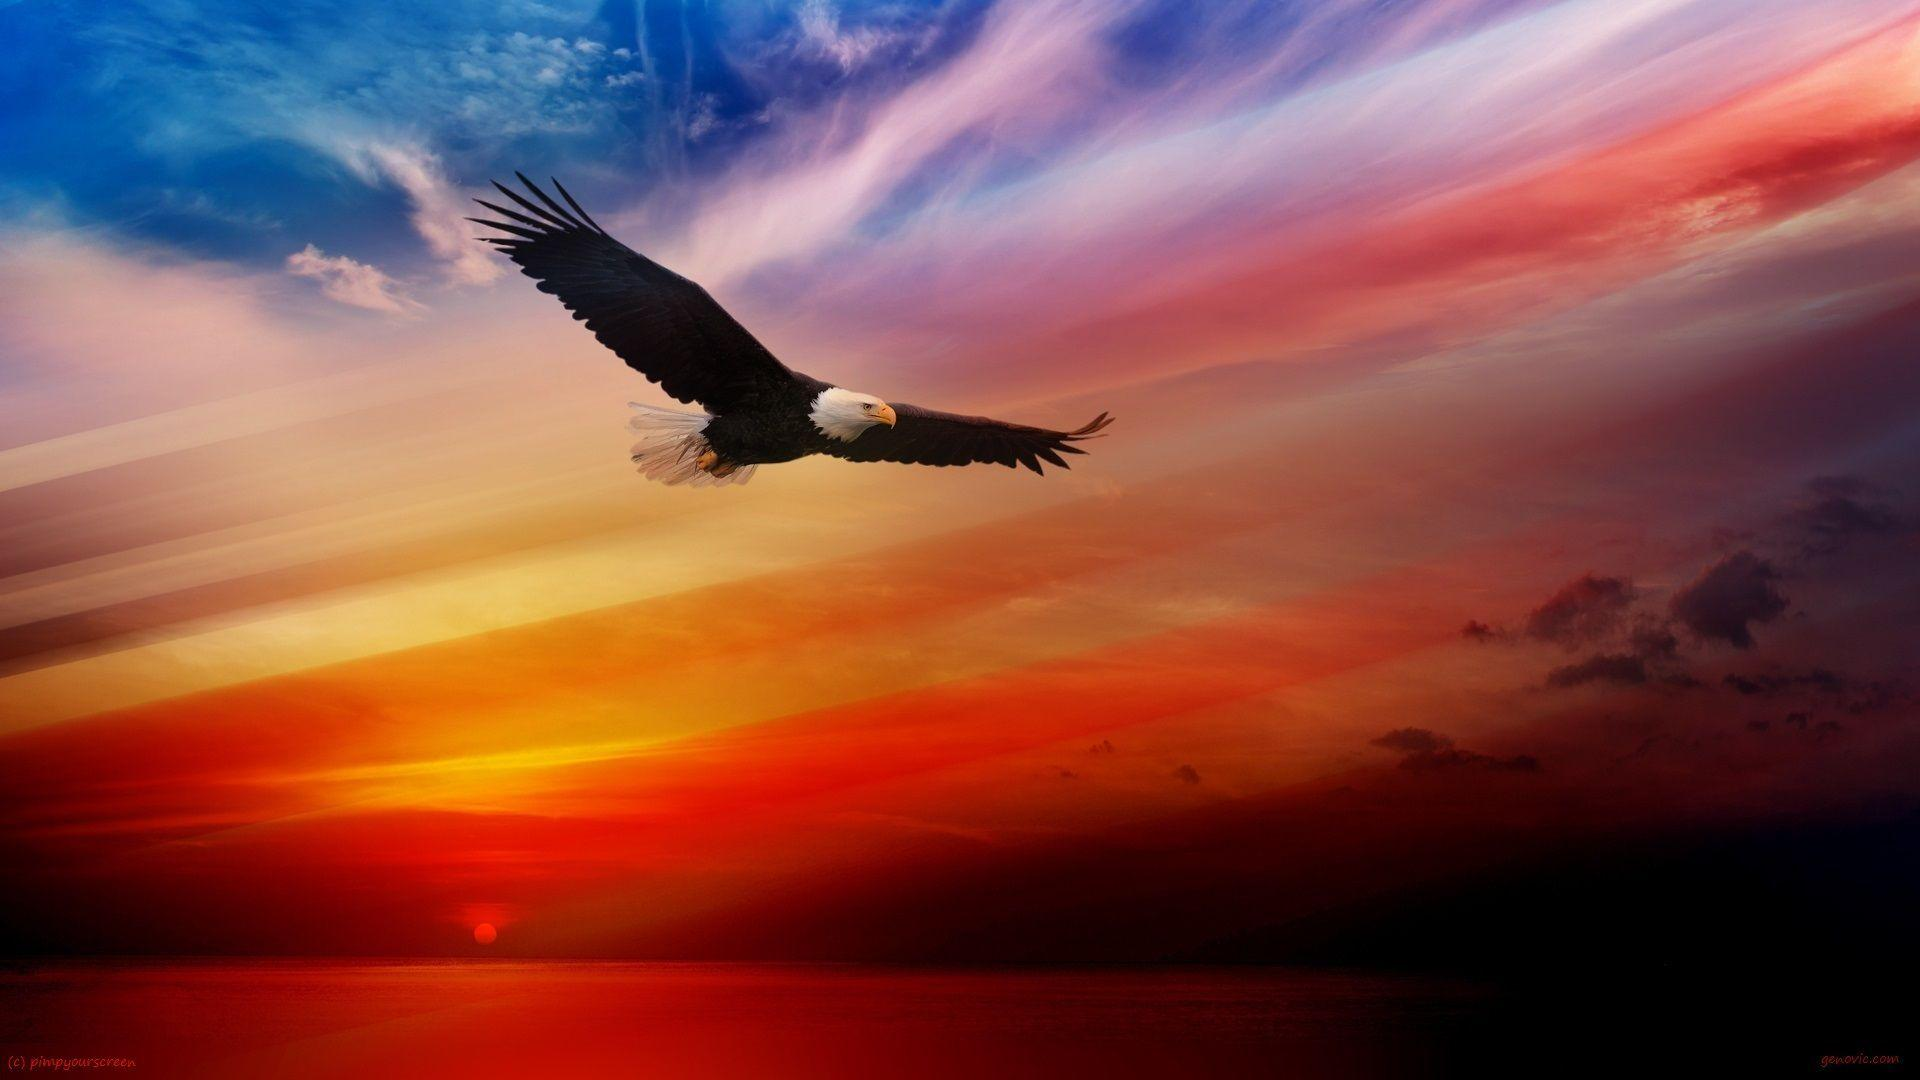 Flying Bald Eagle Wallpapers HD 1080P Free For Desktop